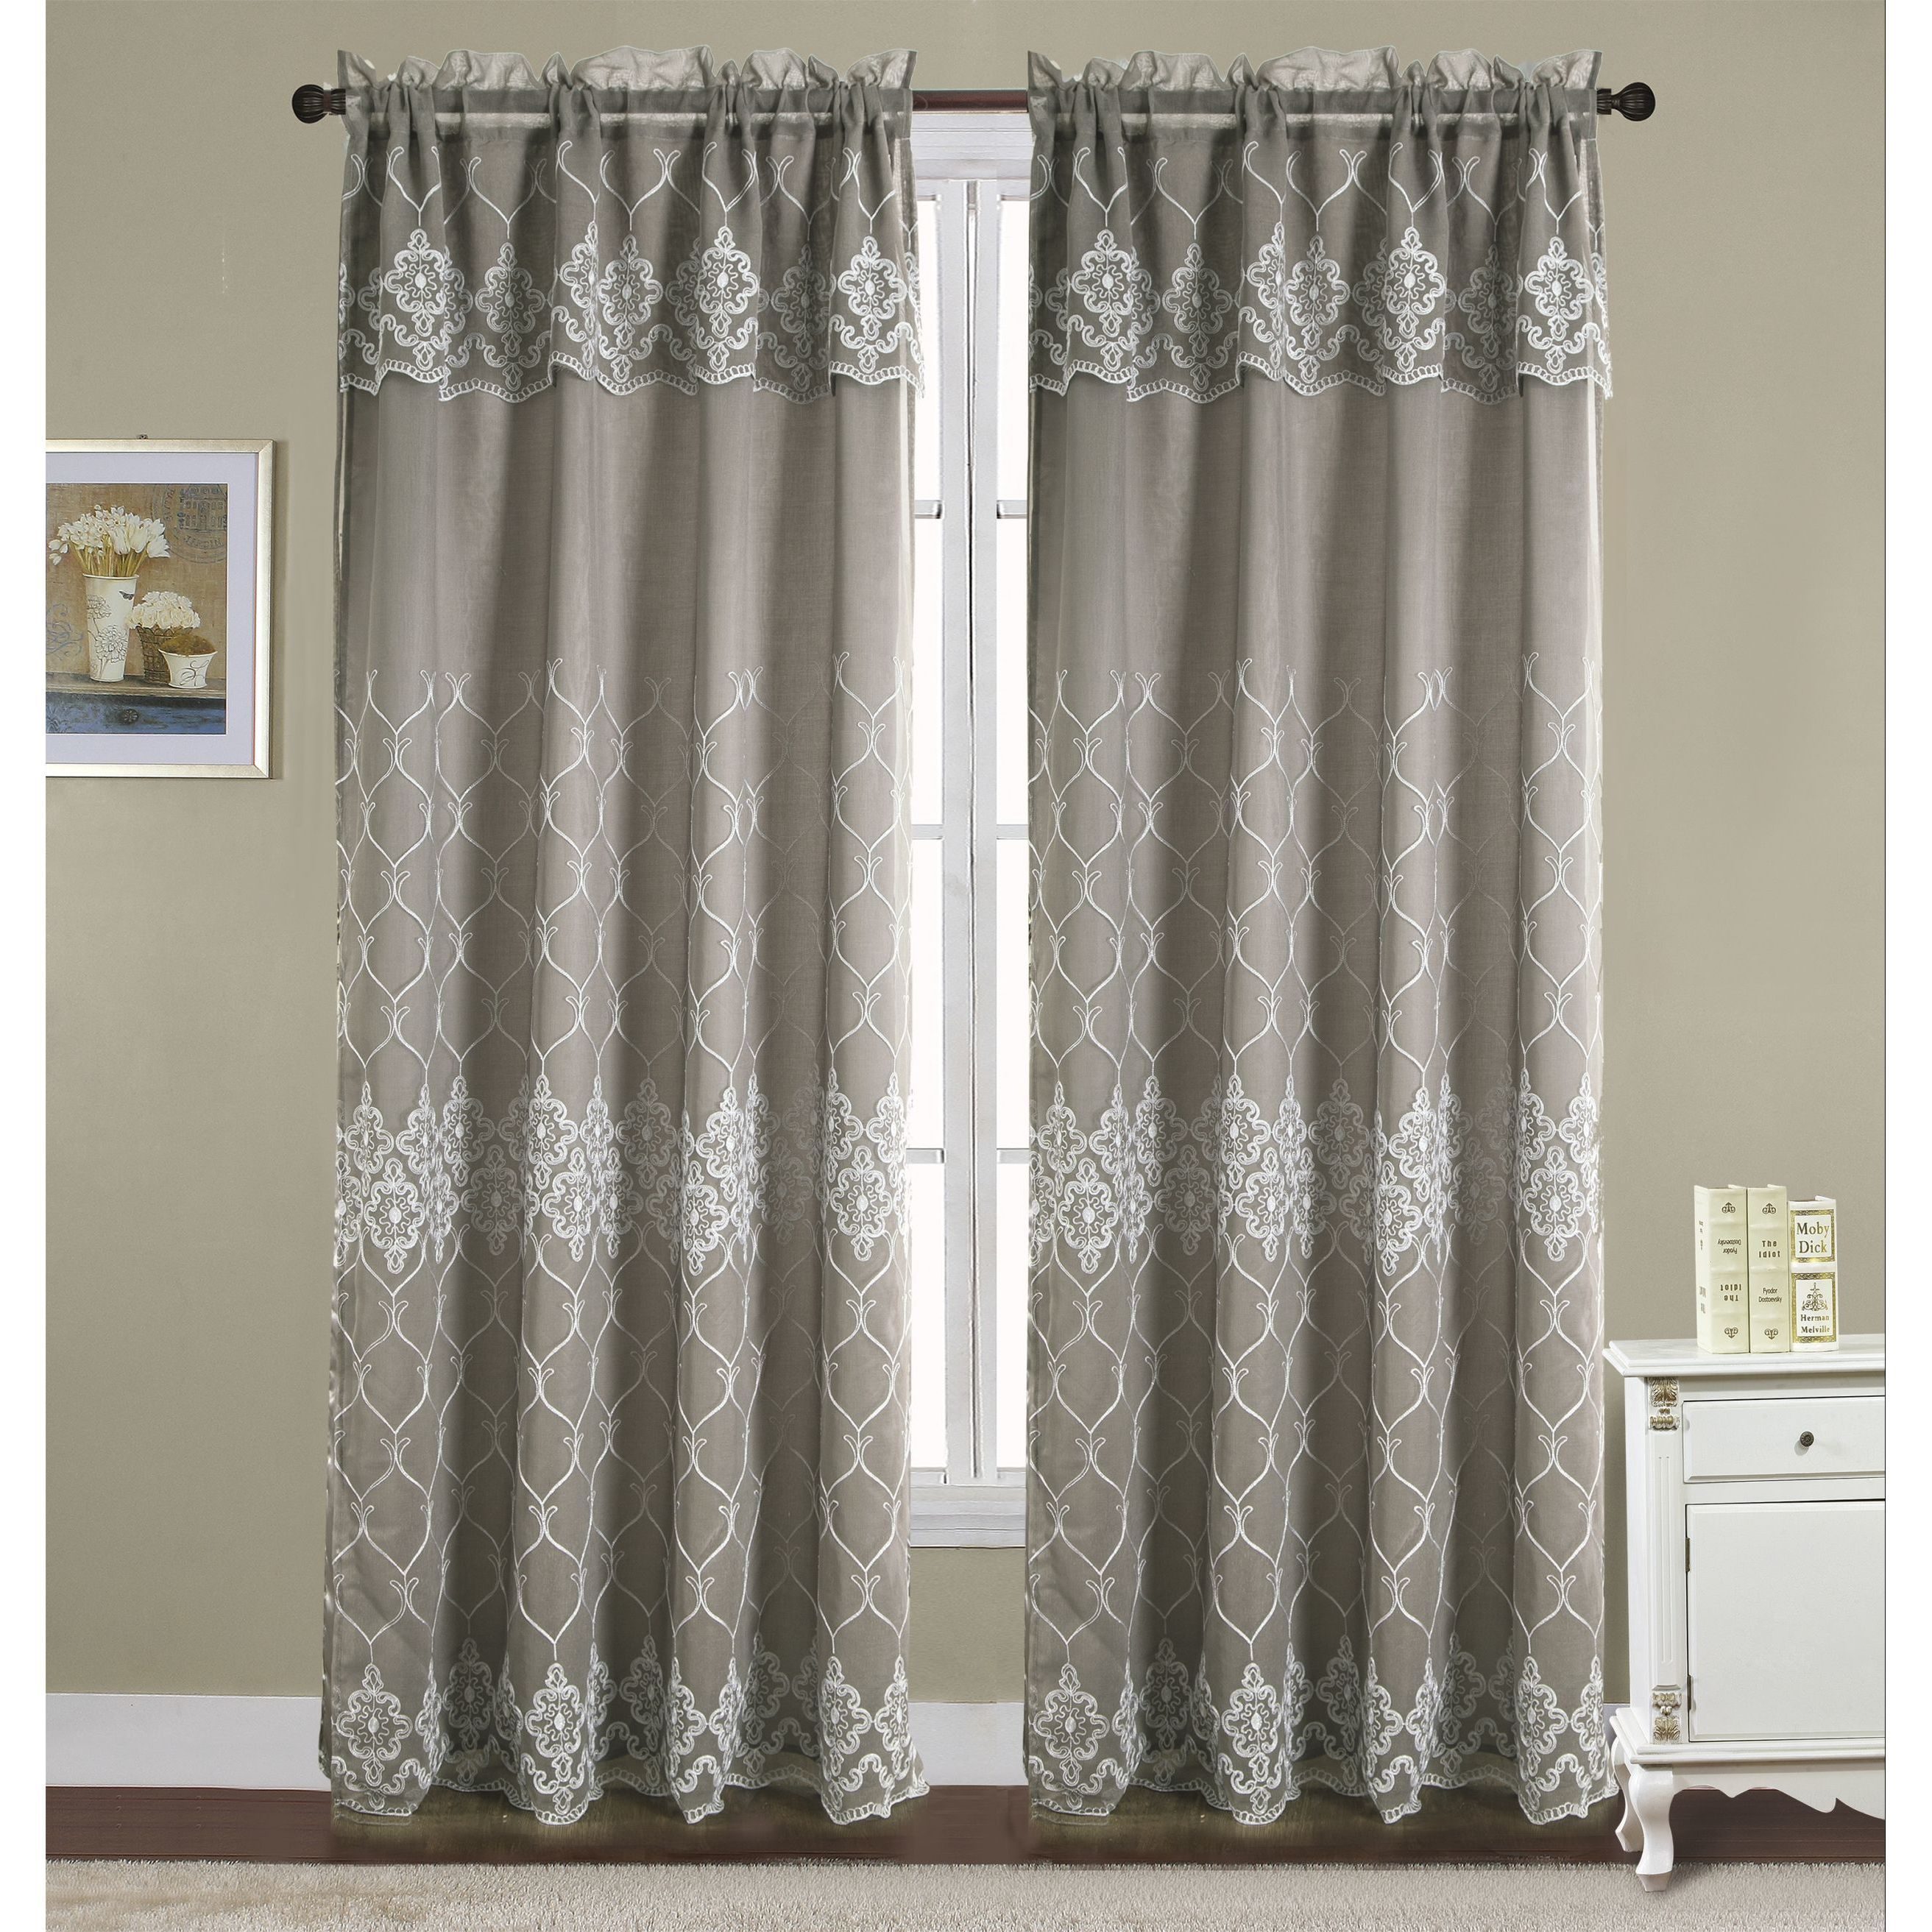 inch long windows hardware drapery valancei olive i splendid with amazon restoration attached blinds ideas curtain green design com curtains drapes and panels